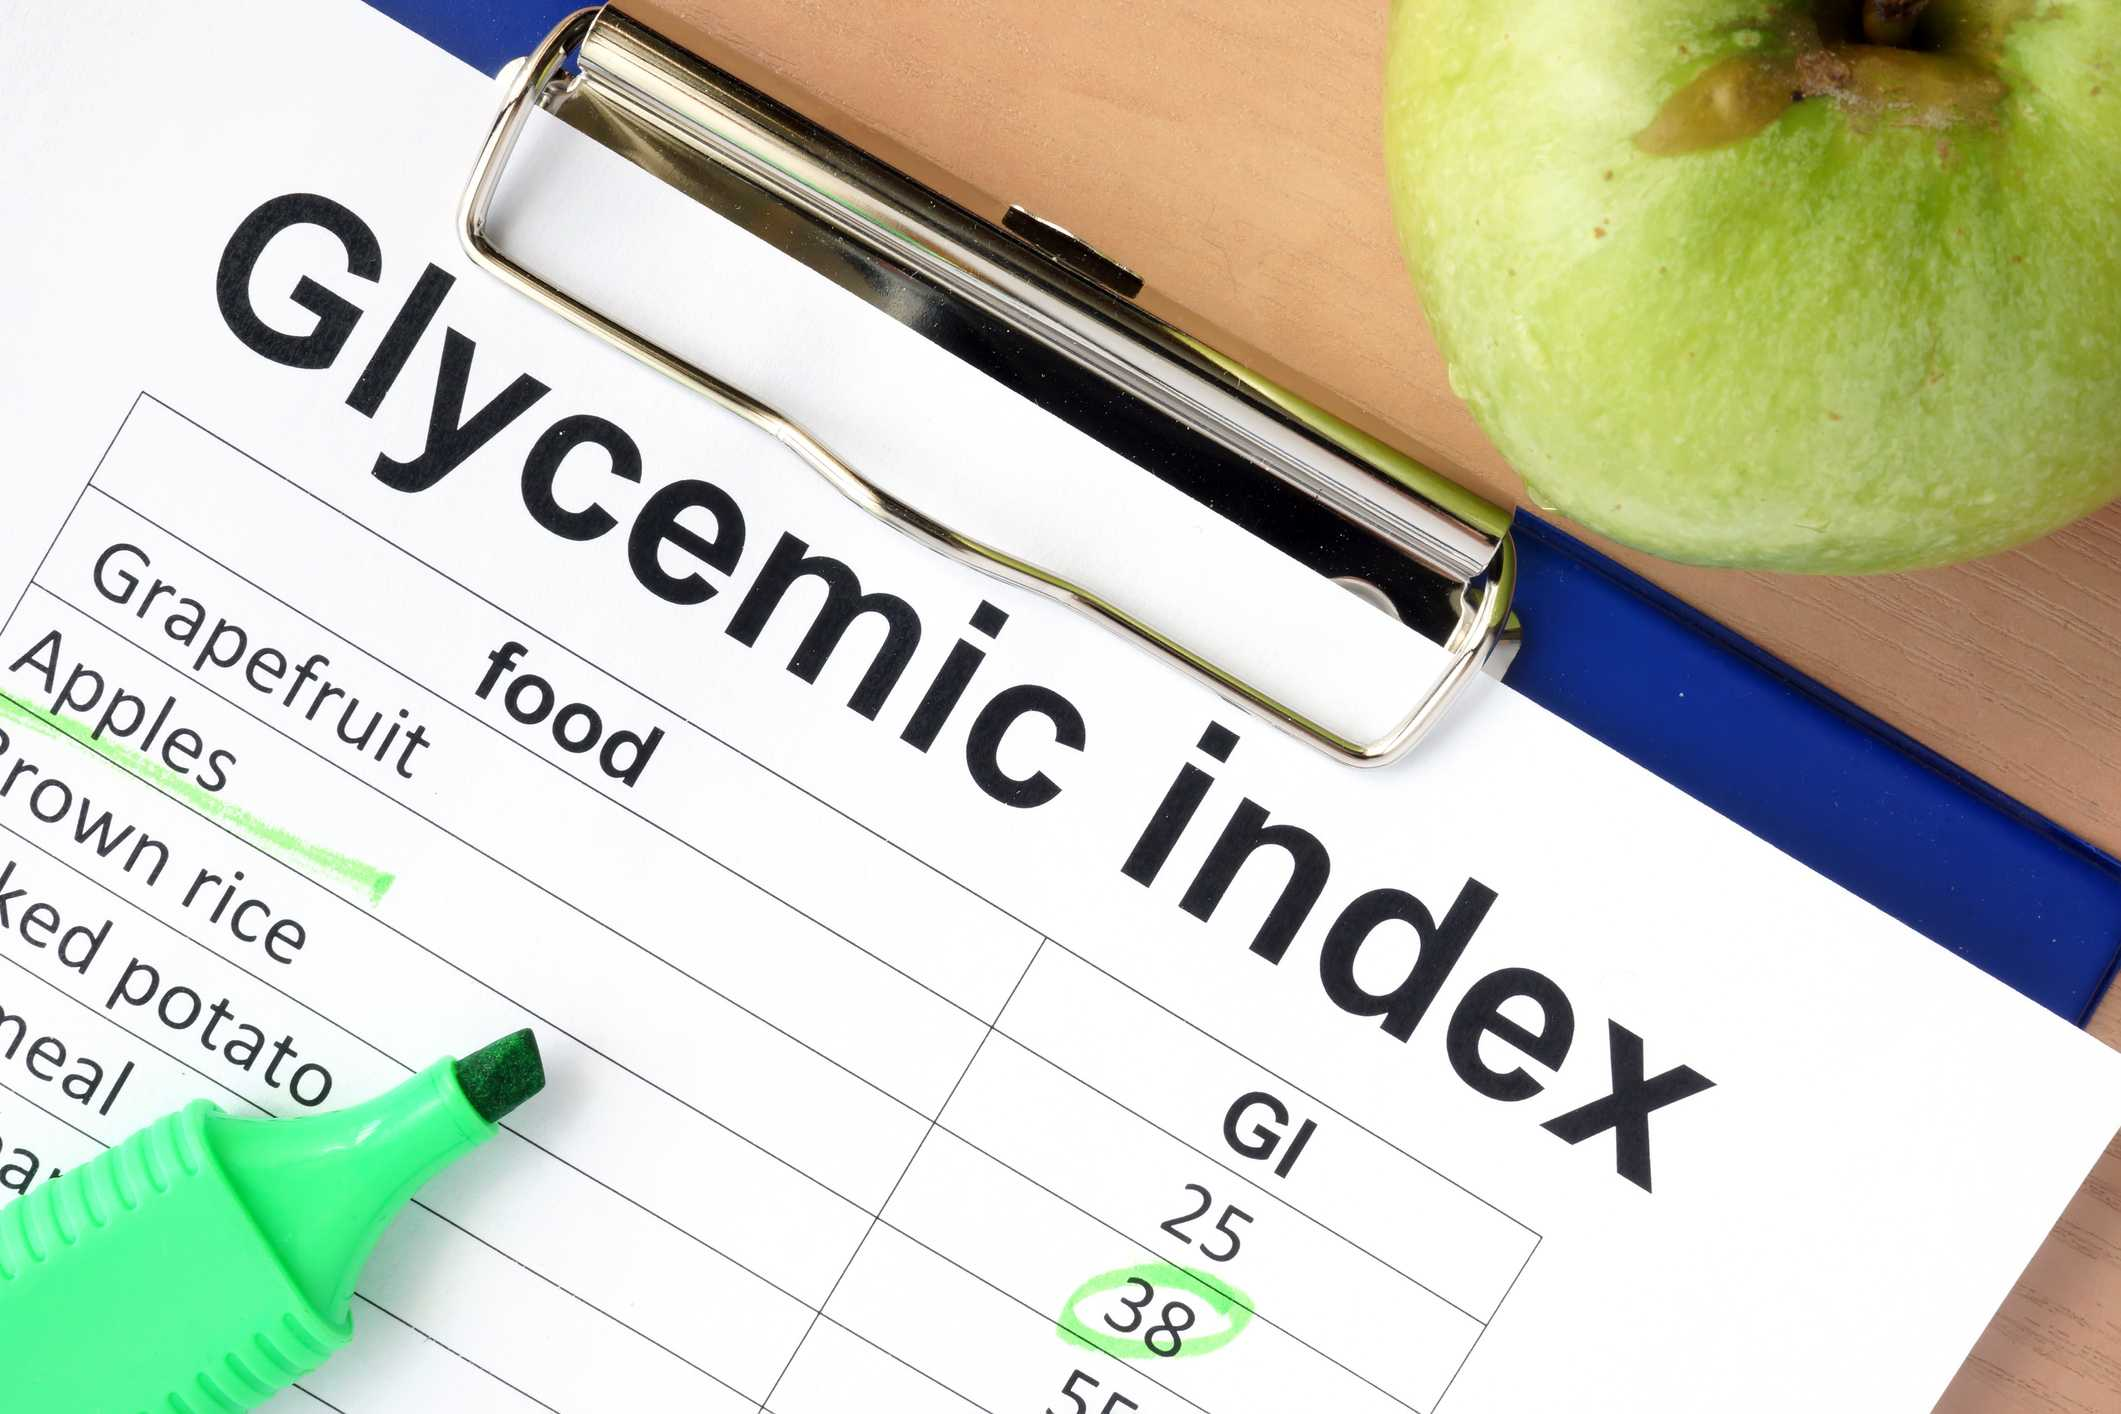 GI Index and Carbohydrates